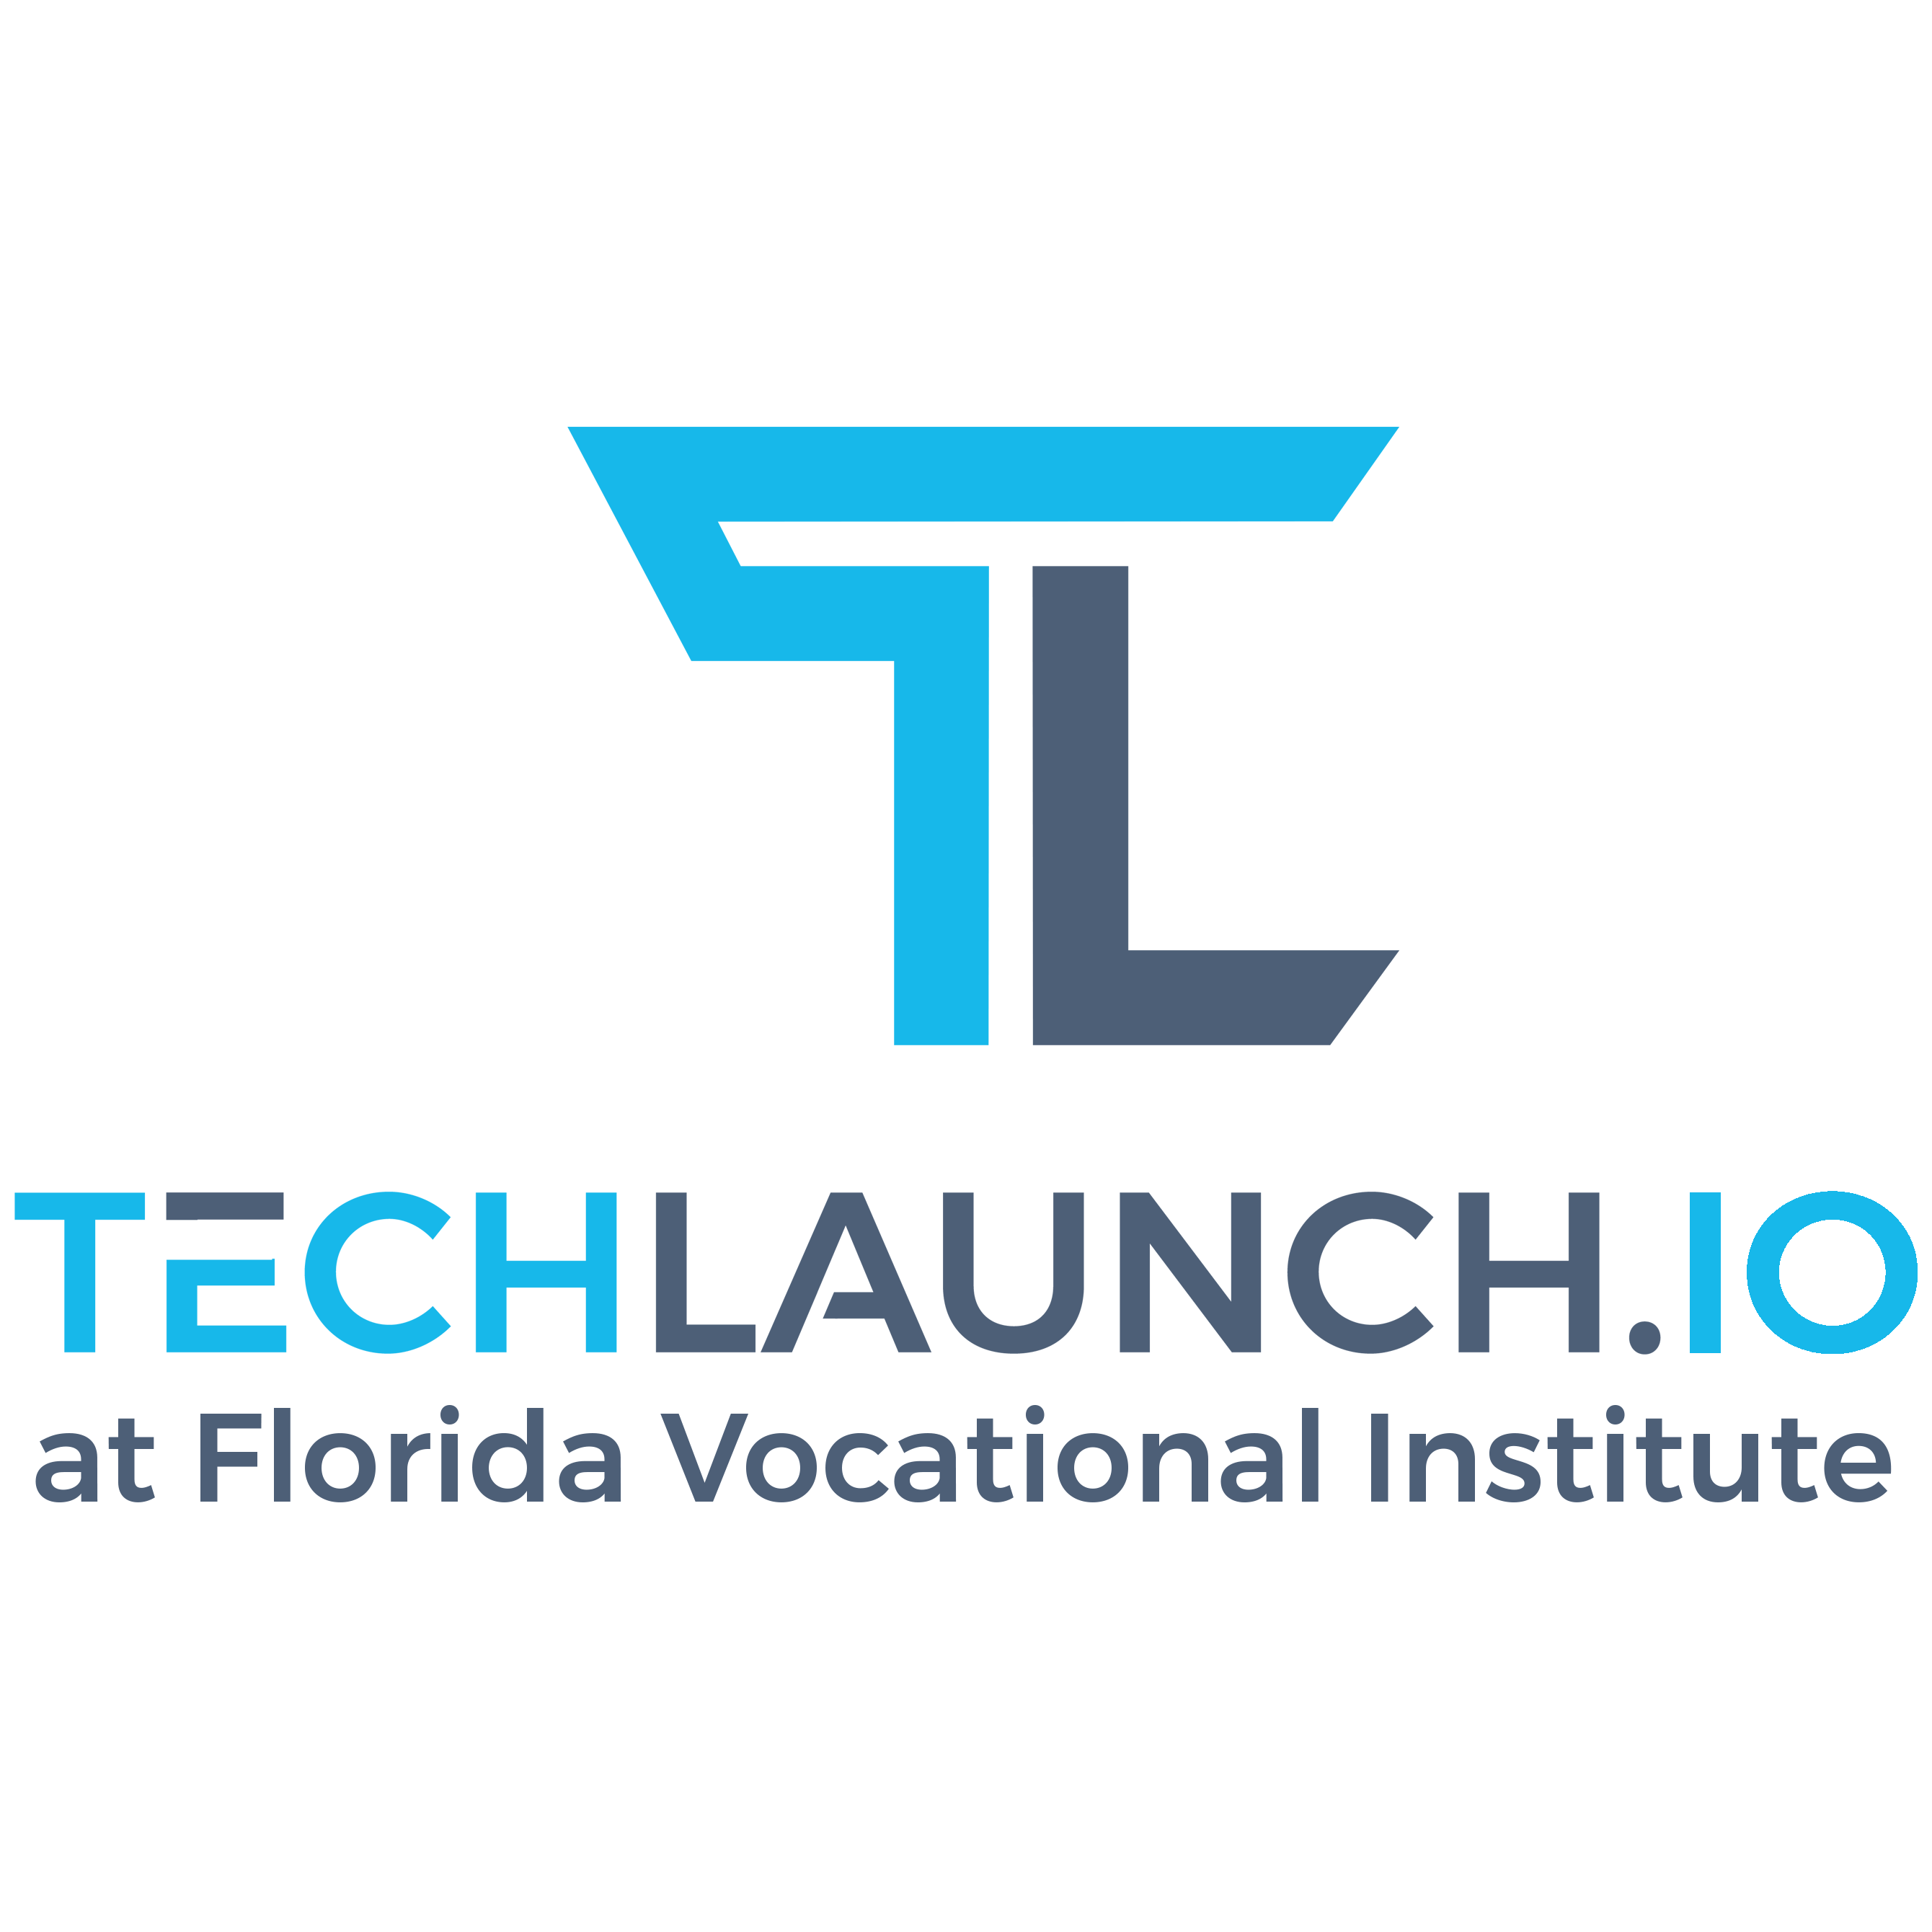 Techlaunch Coding School, a Doral Chamber of Commerce member.